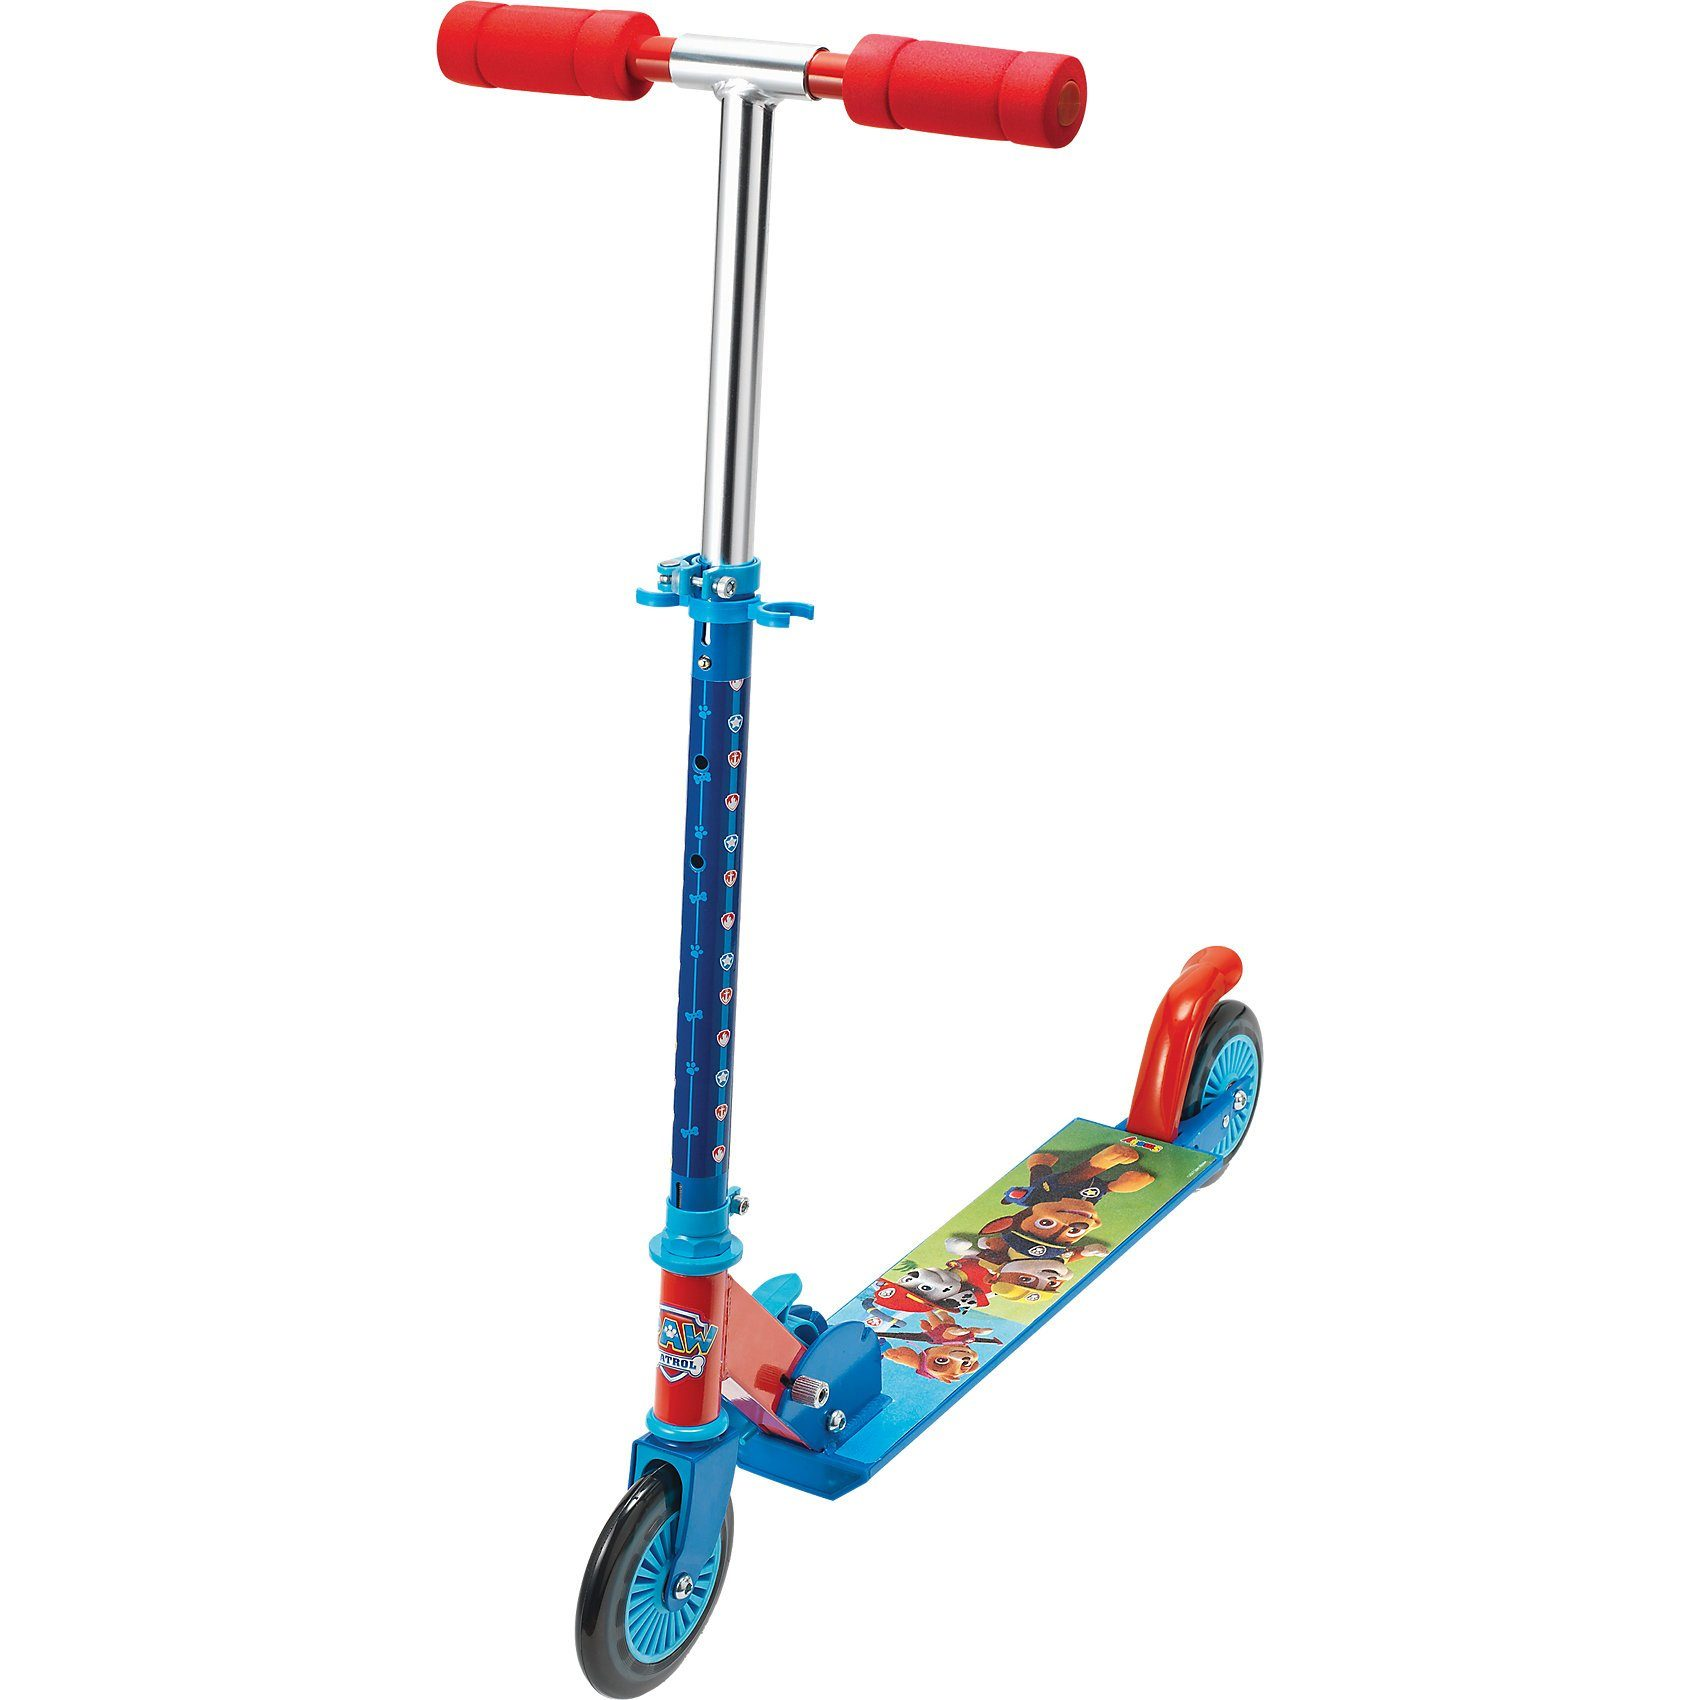 Smoby Paw Patrol Scooter mit Bremse, klappbar